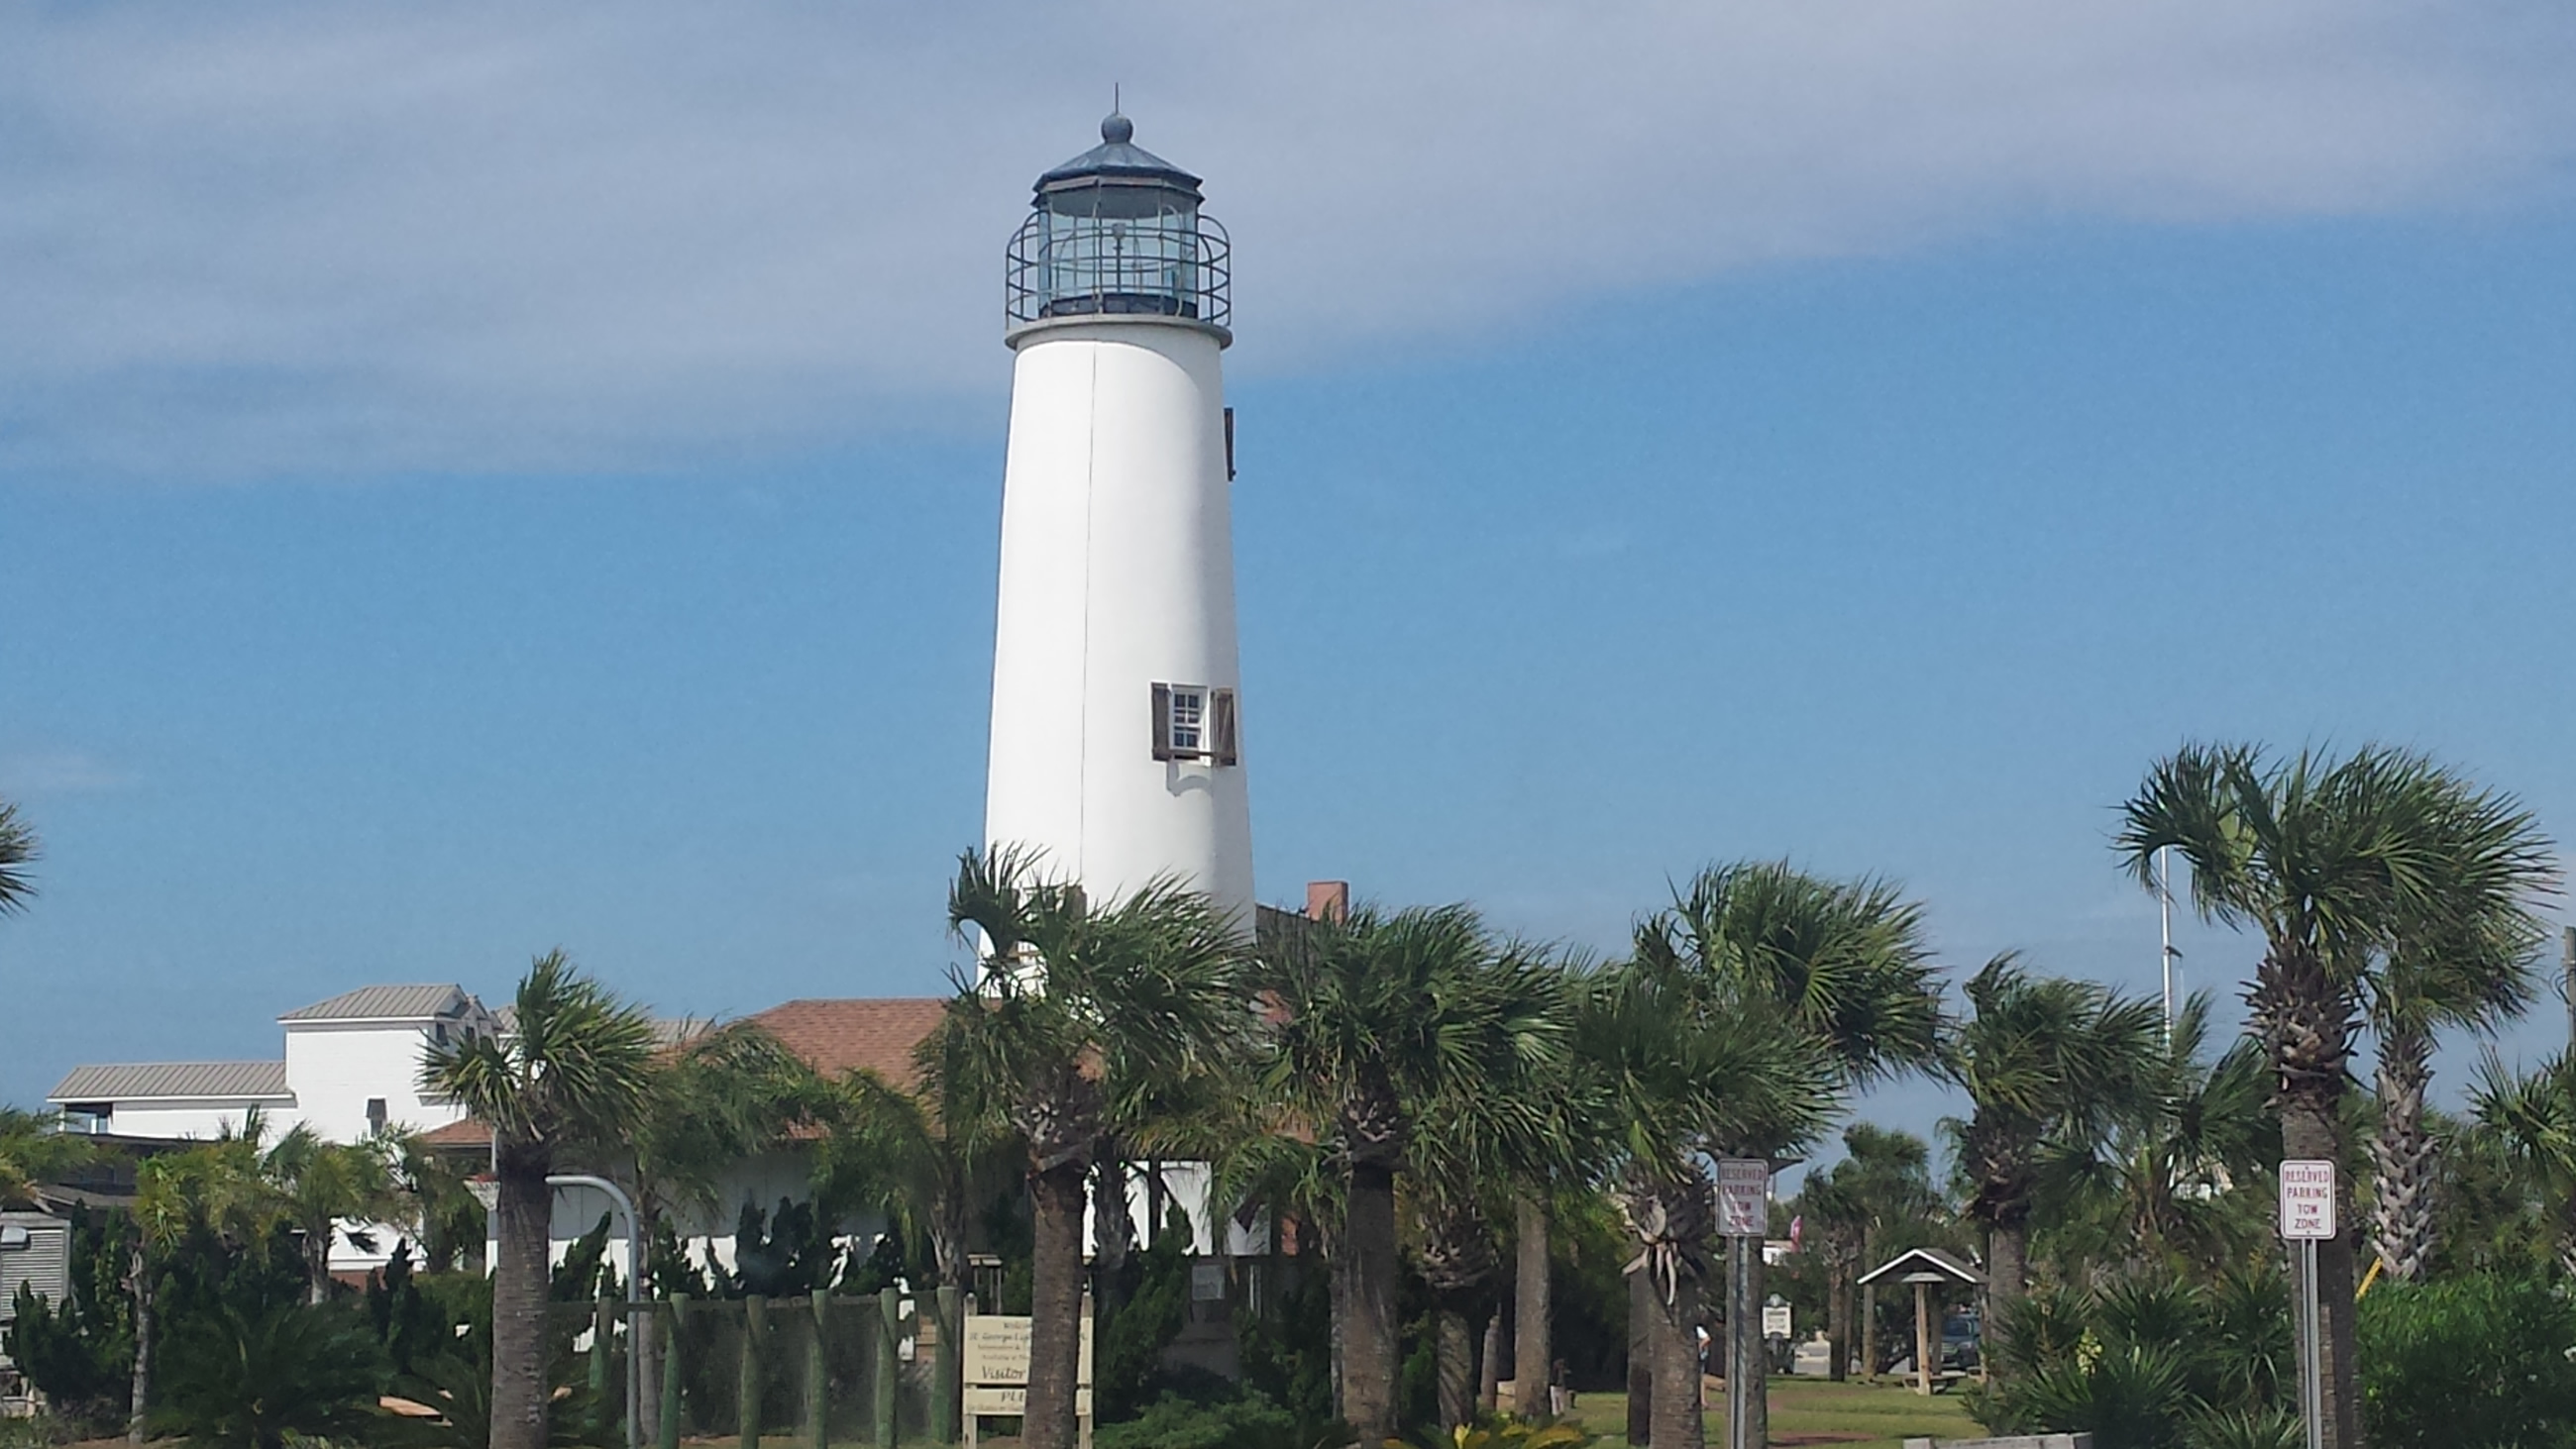 White Lighthouse on St George Island, FL